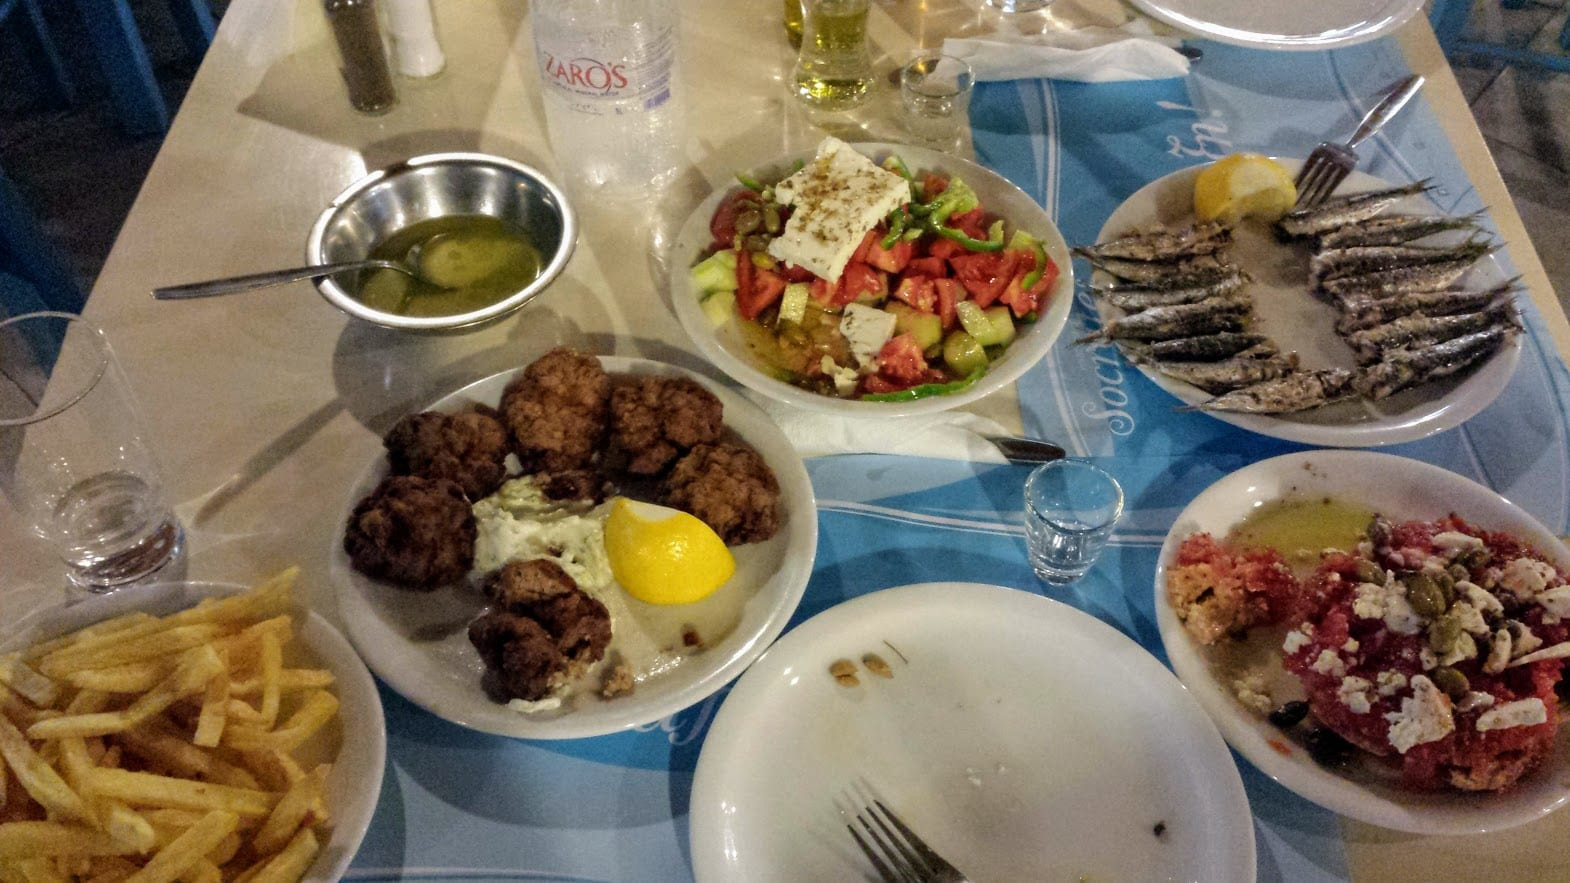 An evening meal in Heraklion Crete.